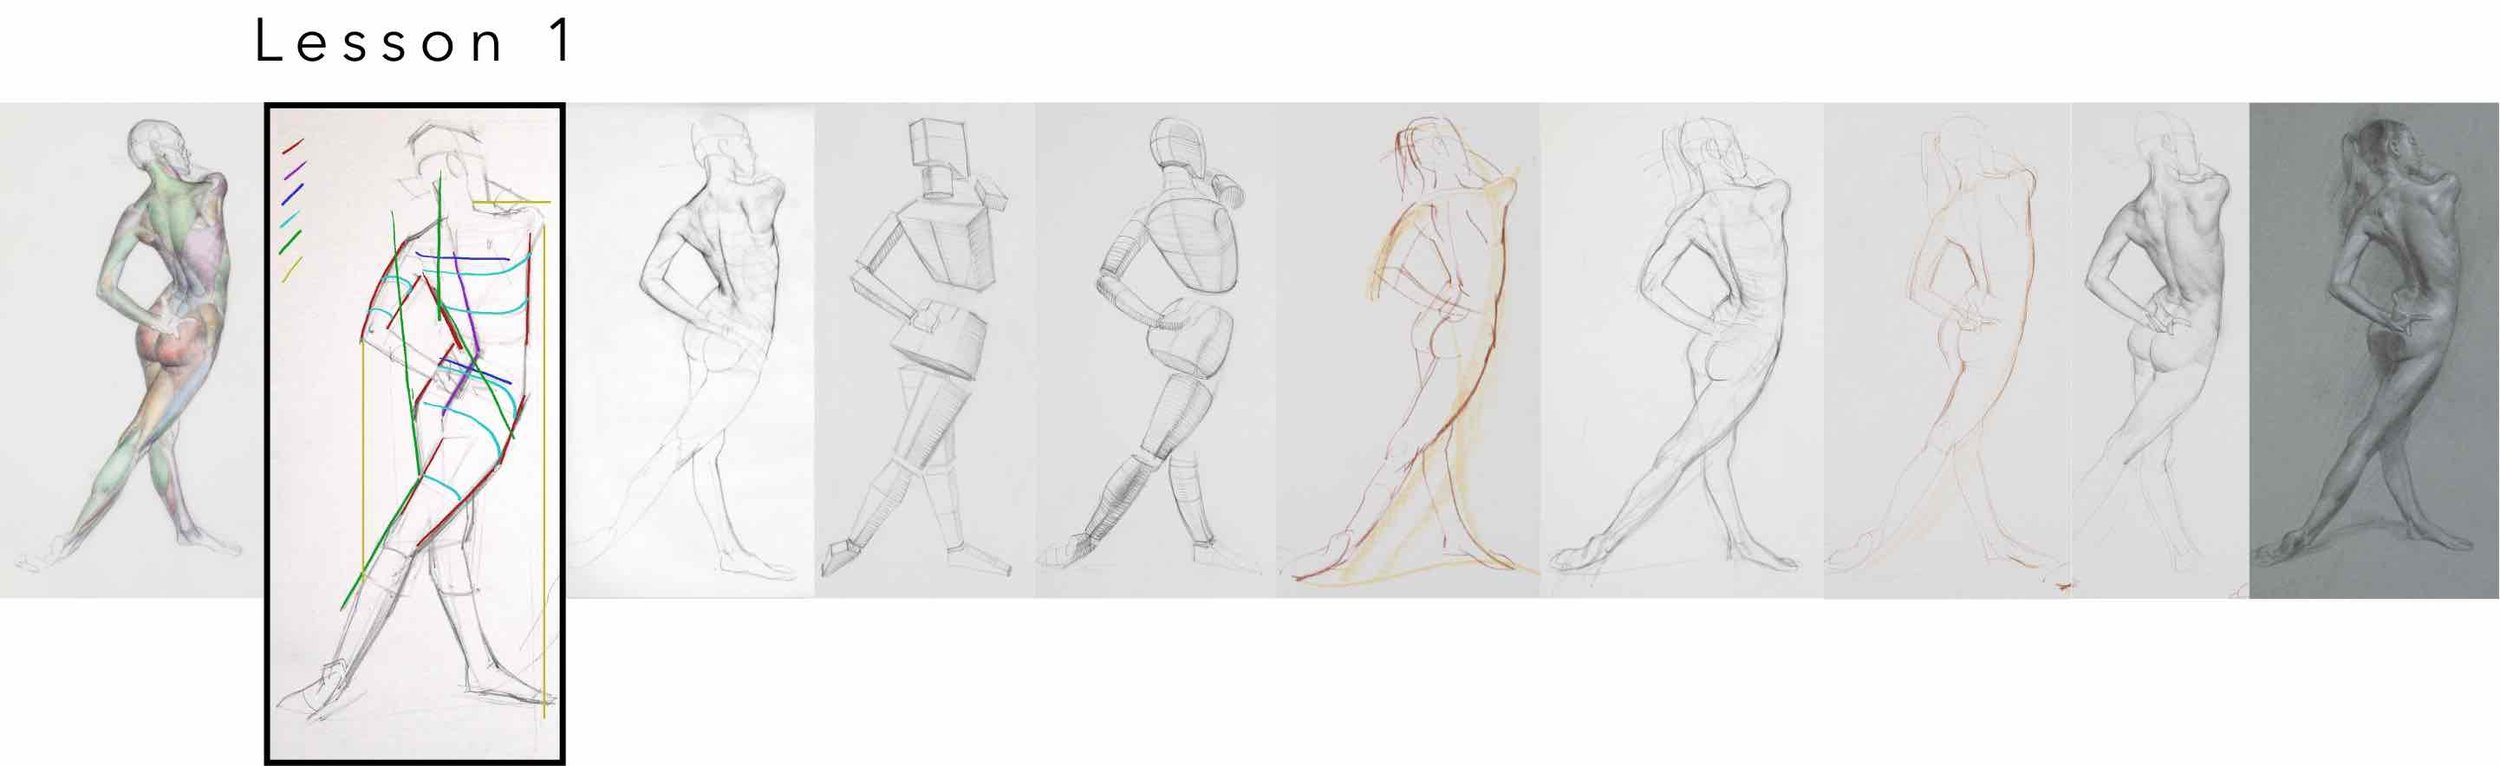 header lesson 1 scott breton form gesture anatomy life drawing course.jpg